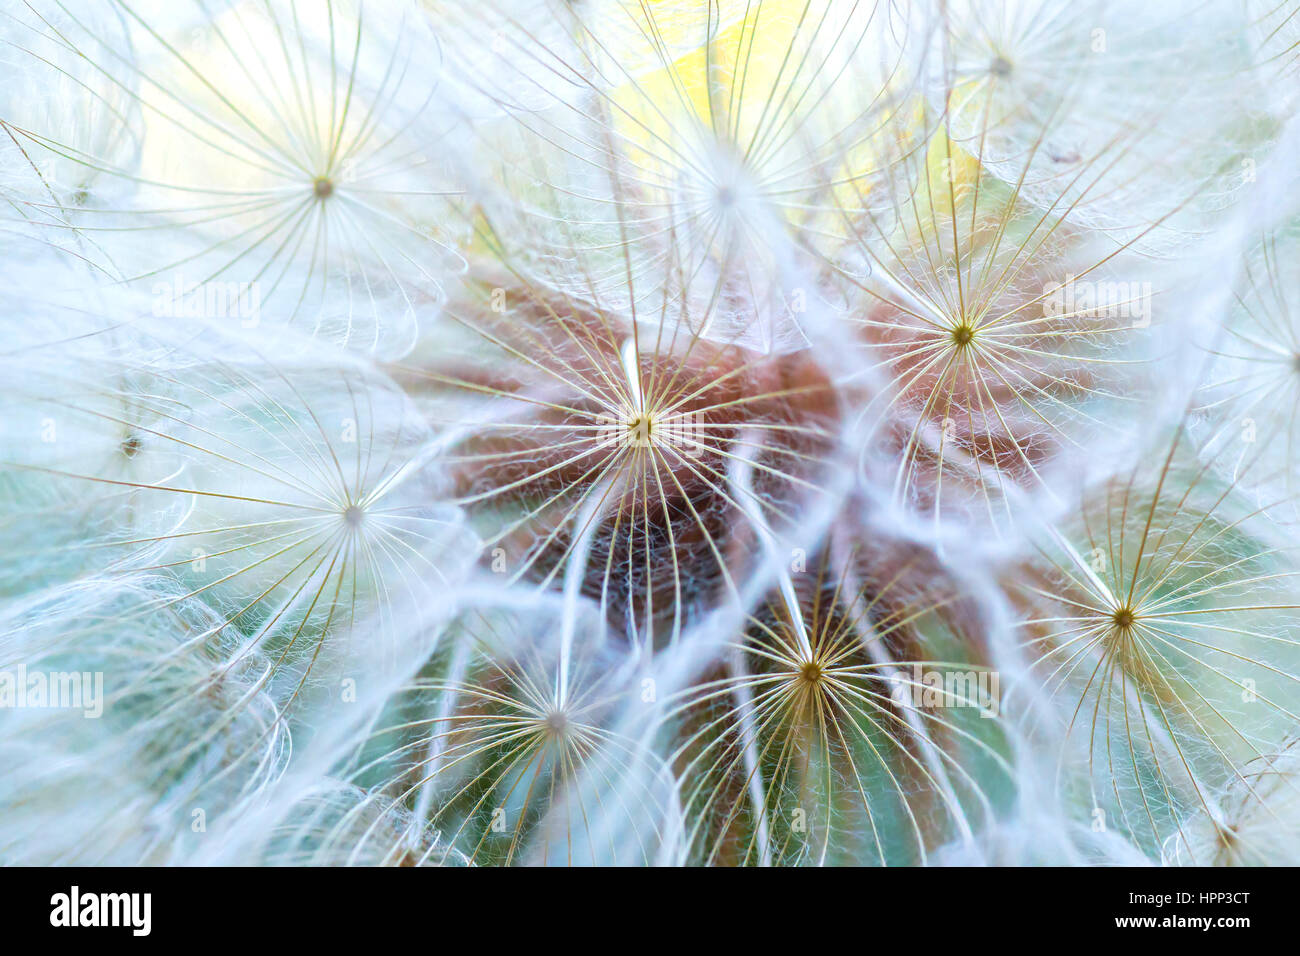 Dandelion macro. The middle of a dandelion. Focus in the center. Blurred and soft color. Stock Photo